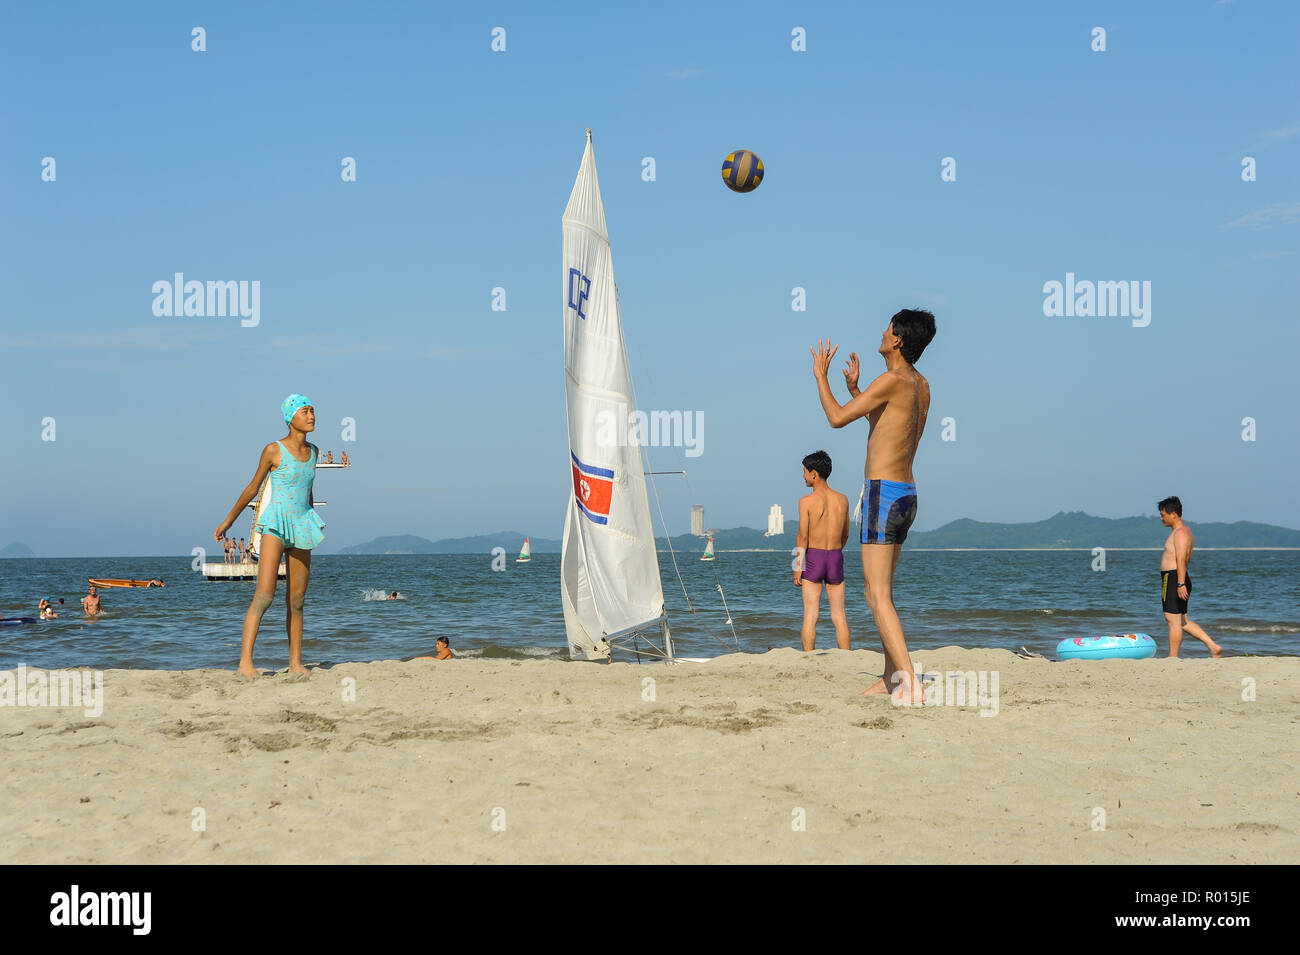 Wonsan, North Korea, beach holidaymaker at the ball game - Stock Image